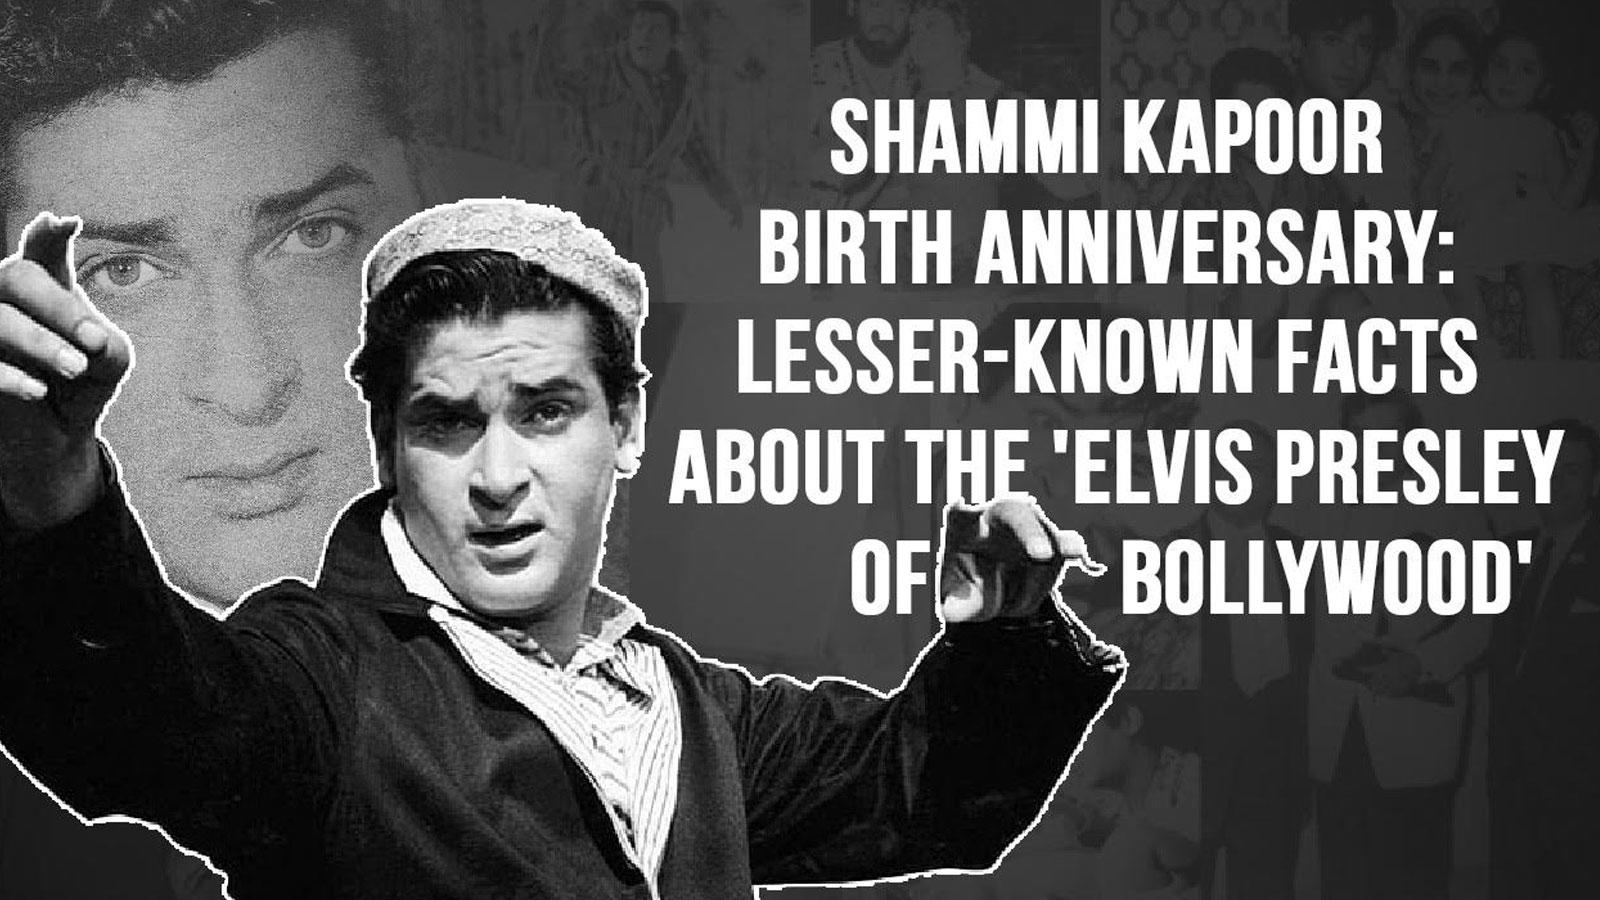 shammi-kapoor-birth-anniversary-lesser-known-facts-about-the-elvis-presley-of-bollywood